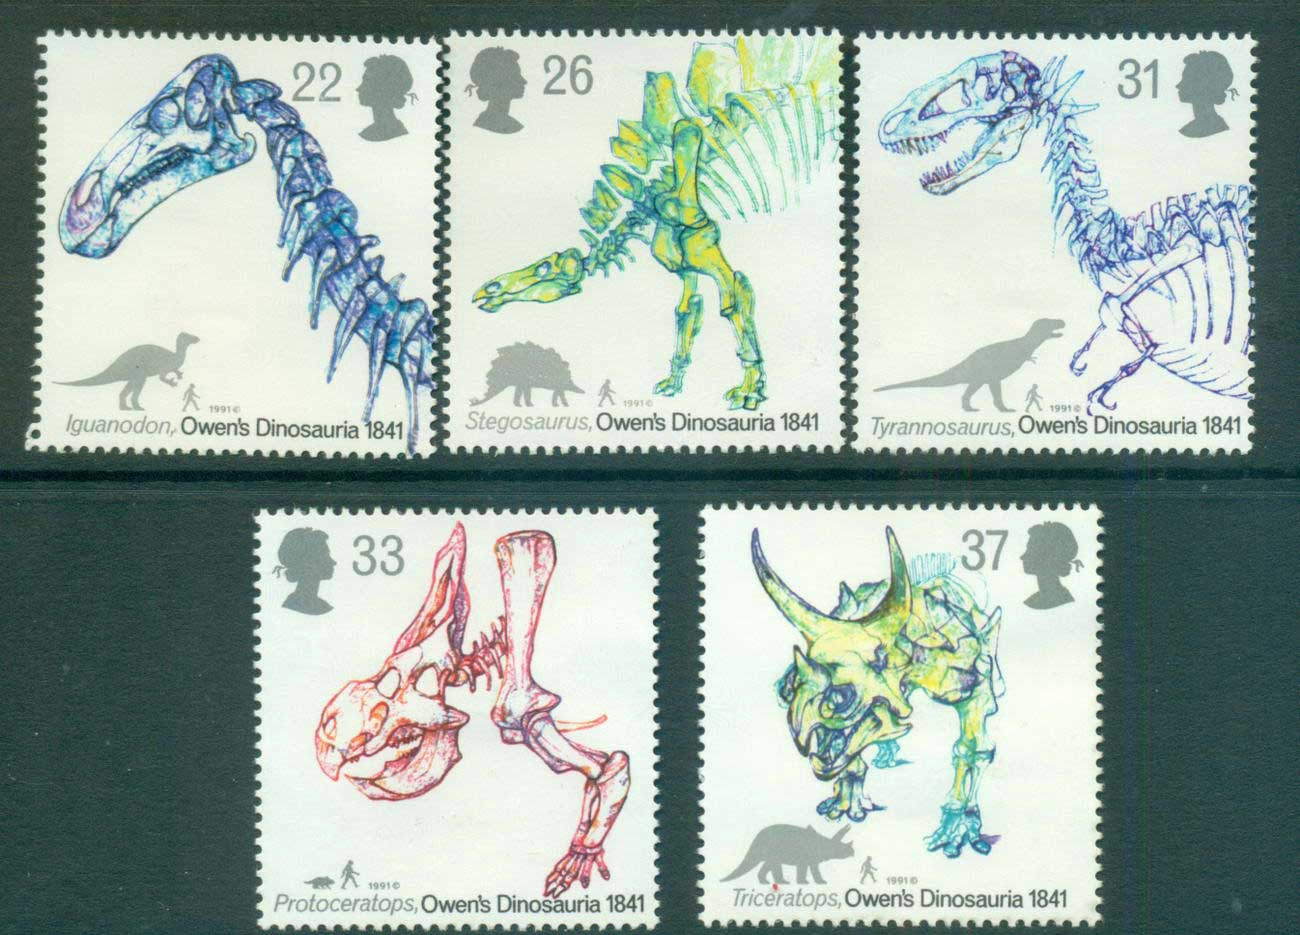 GB 1991 Dinosaurs MLH lot53461